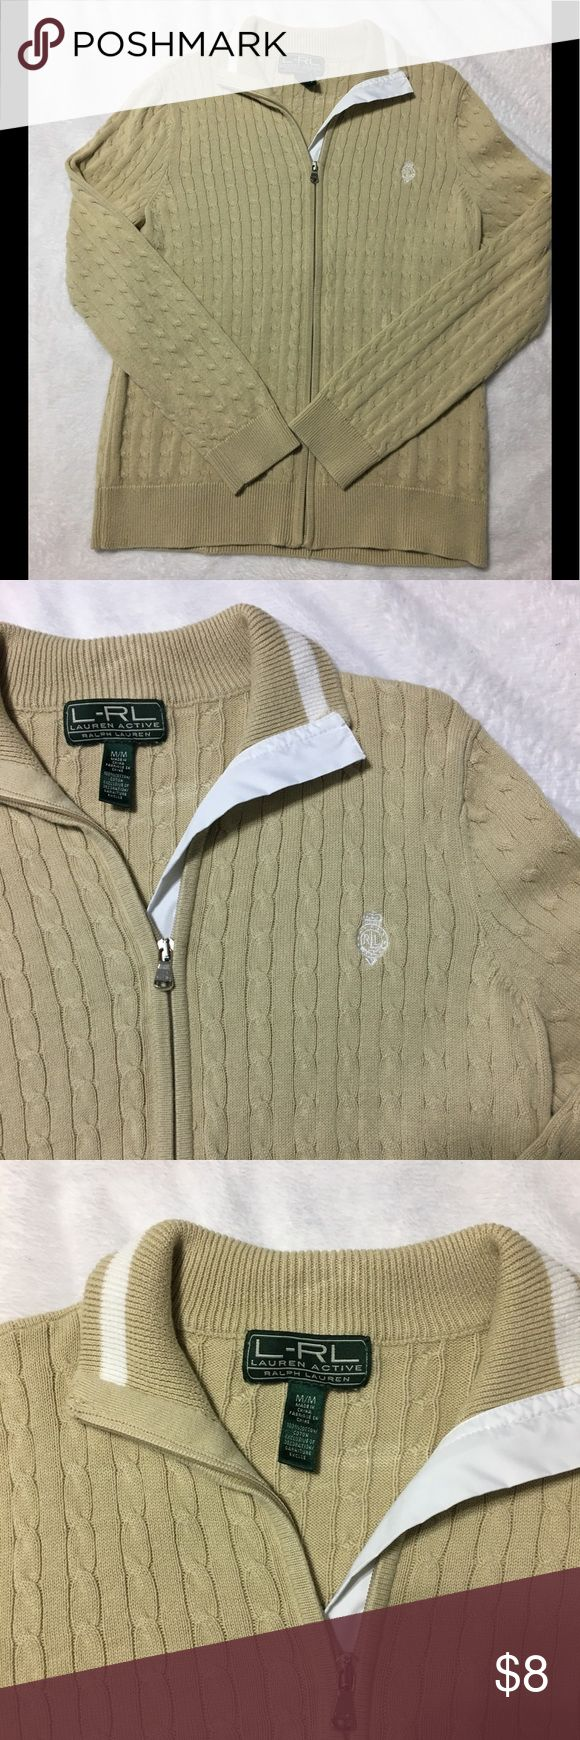 Ralph Lauren zip up sweater Another work staple from my closet. This zip up Ralph Lauren sweater is comfortable and versatile. Wear with jeans or dress slacks. Tan in color. Bundle and save on shipping and get a discount. Ralph Lauren Sweaters Cardigans